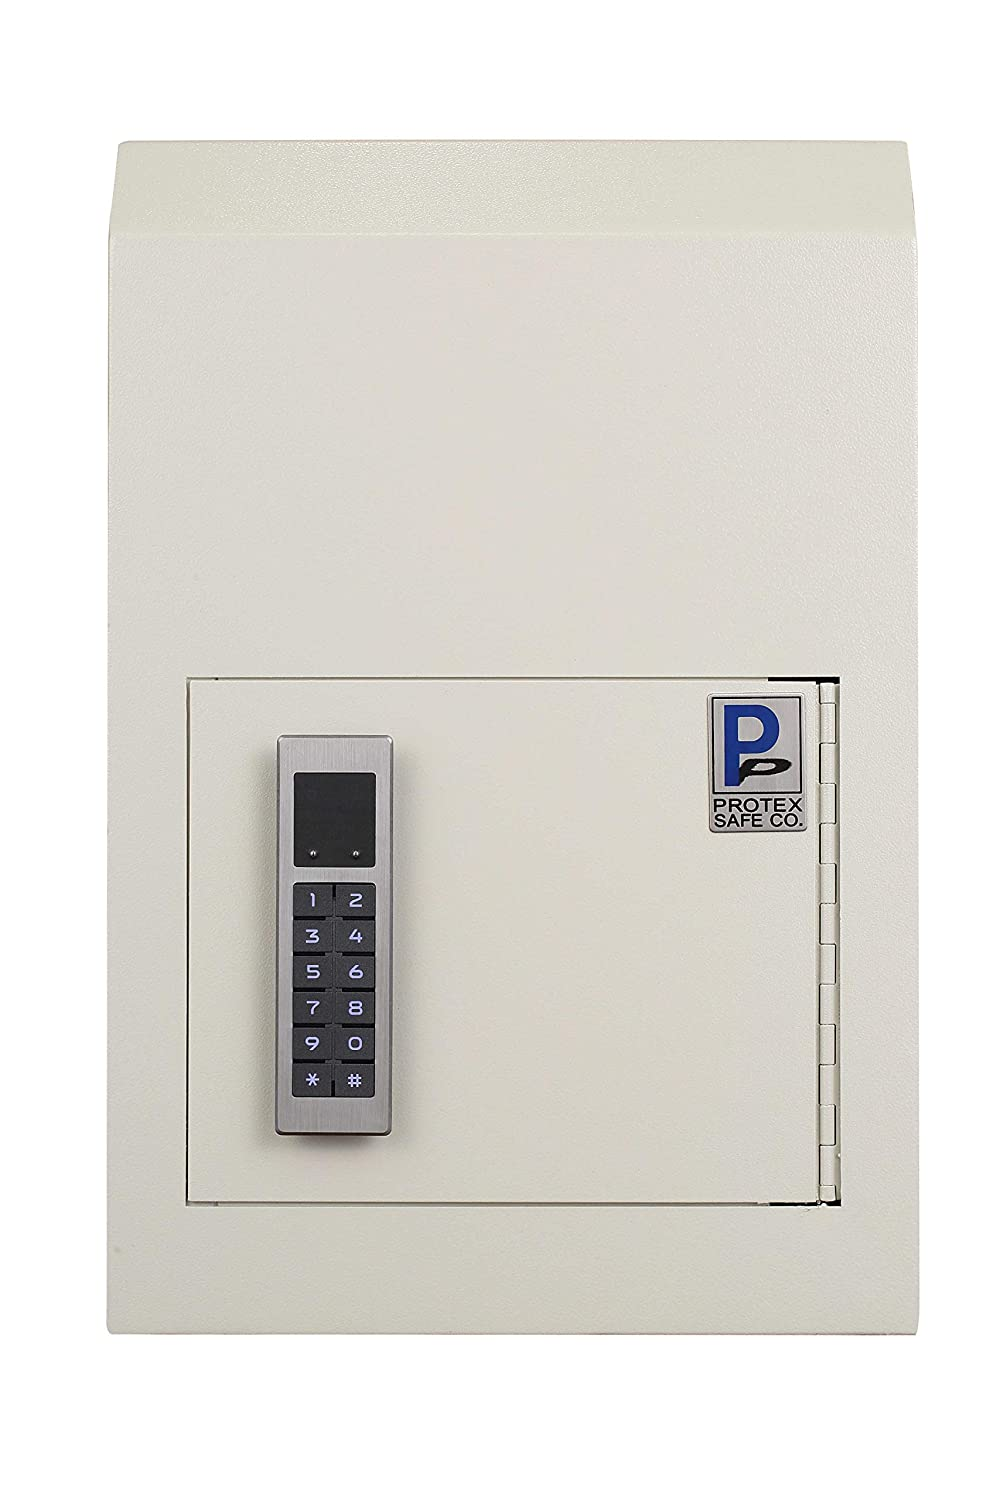 7. Protex WSS-159E II Through the Door DropBox with Electronic Lock